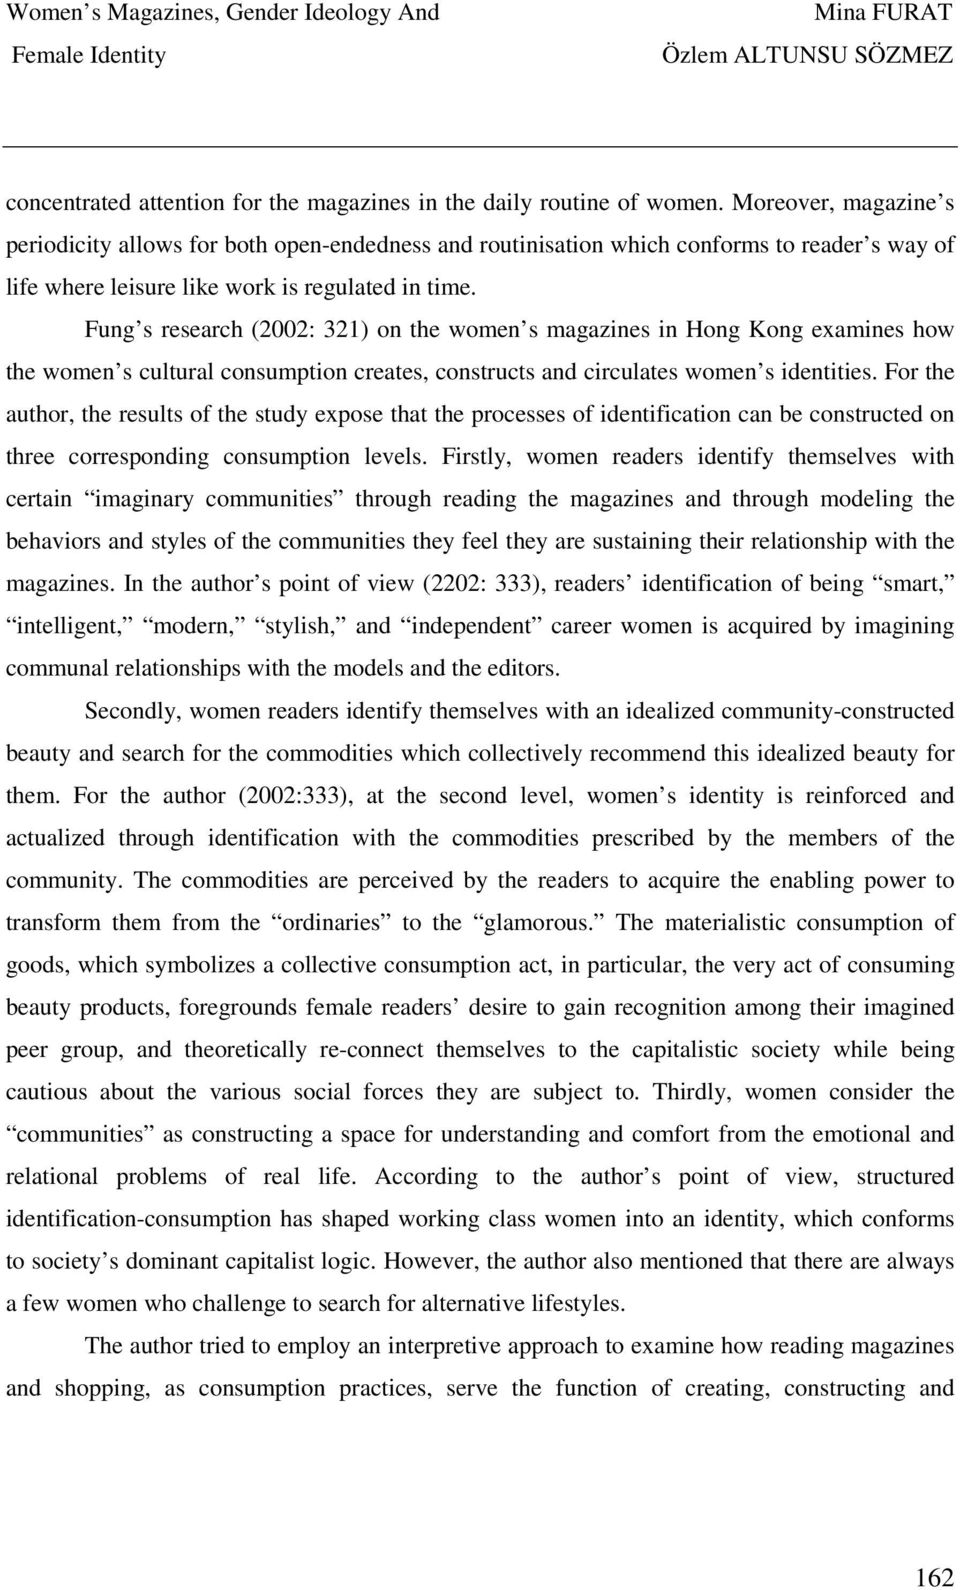 Fung s research (2002: 321) on the women s magazines in Hong Kong examines how the women s cultural consumption creates, constructs and circulates women s identities.